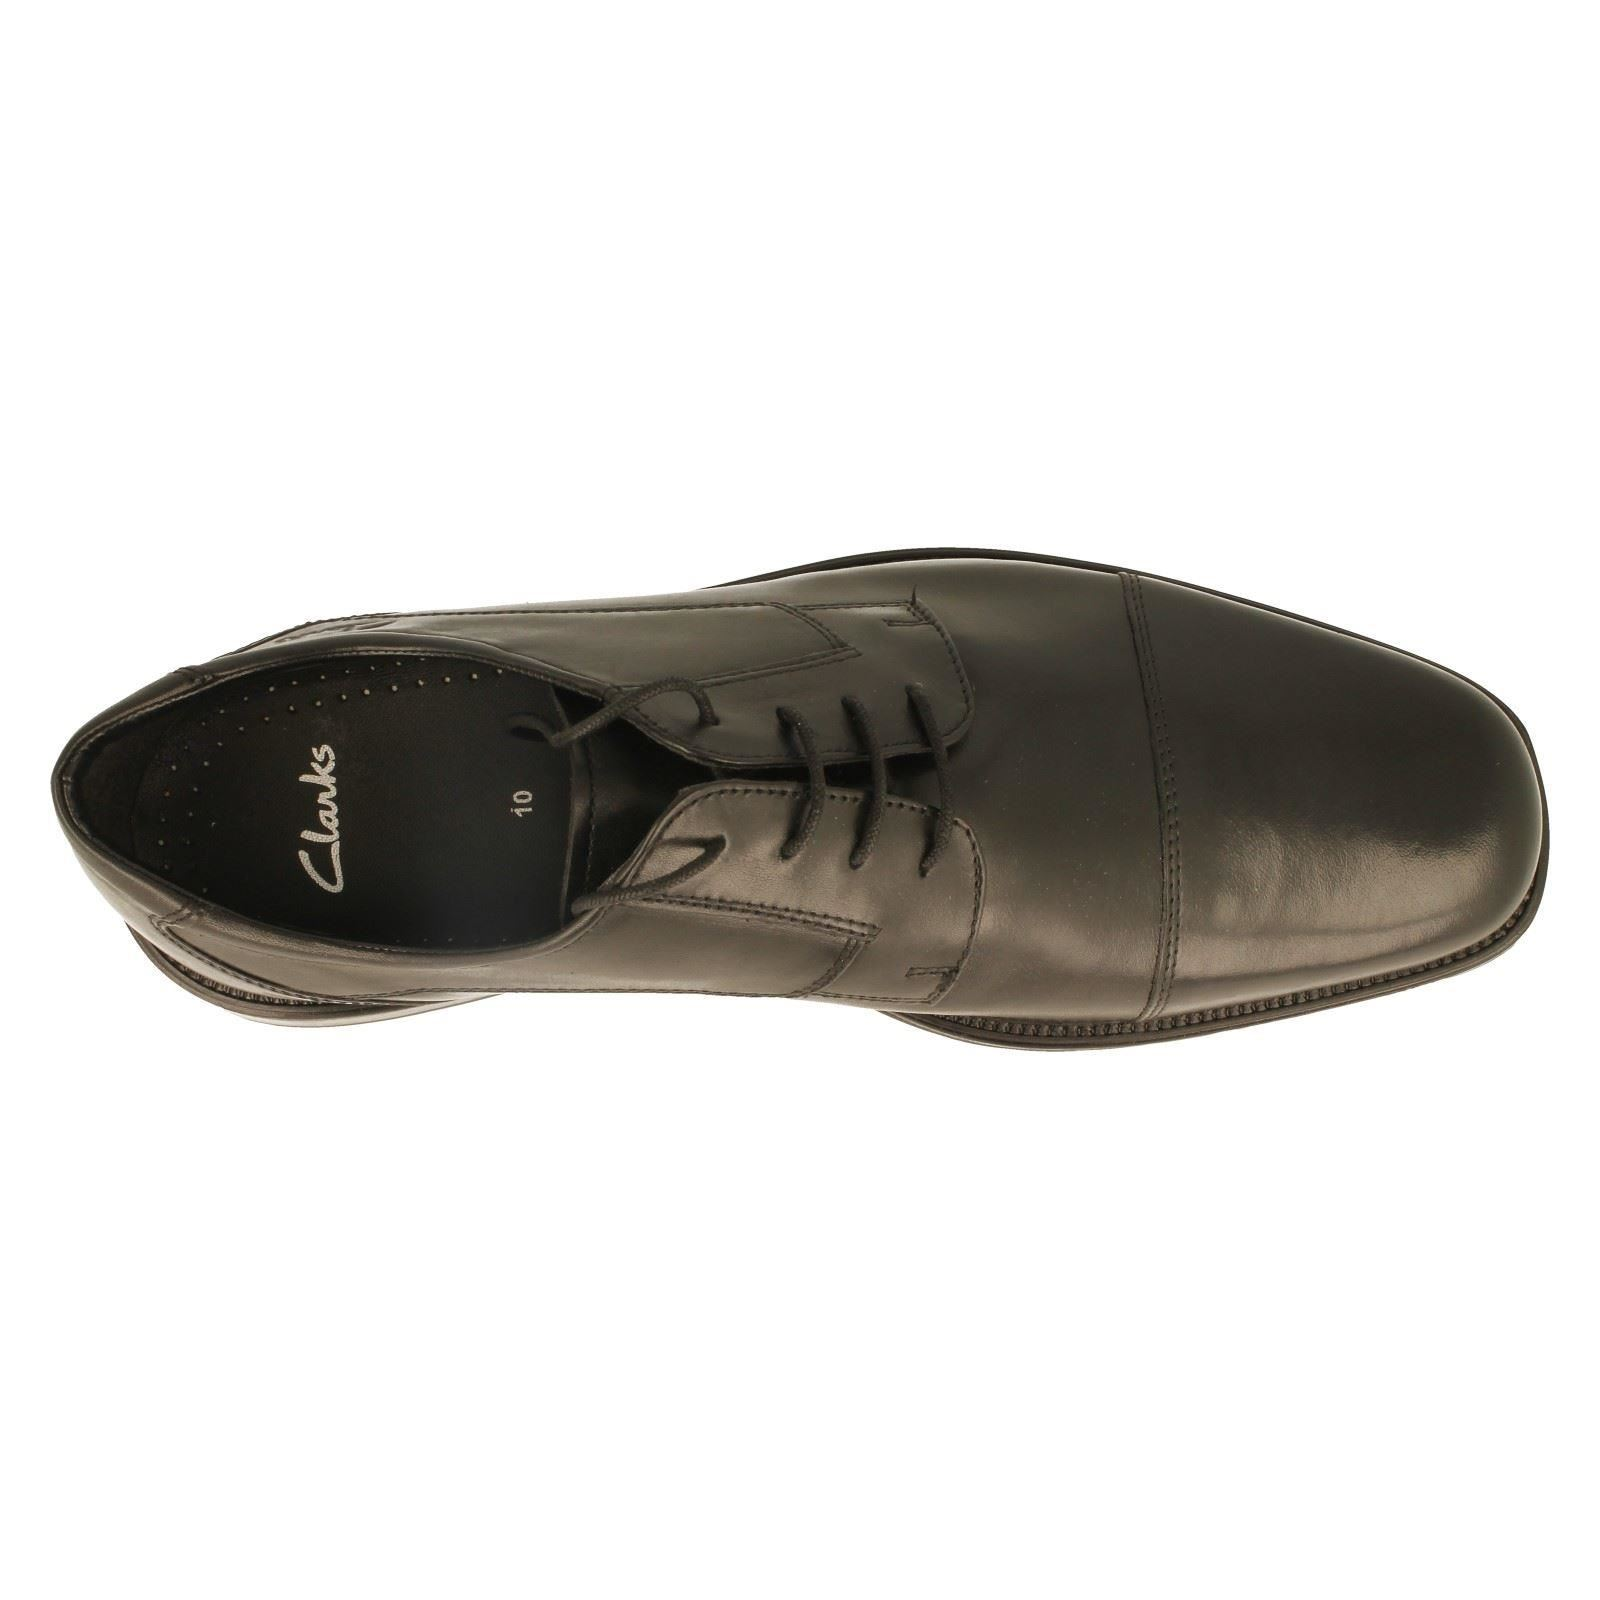 Breech formali Black Style Act da w uomo Clarks stringate The Scarpe 0wvqFpx